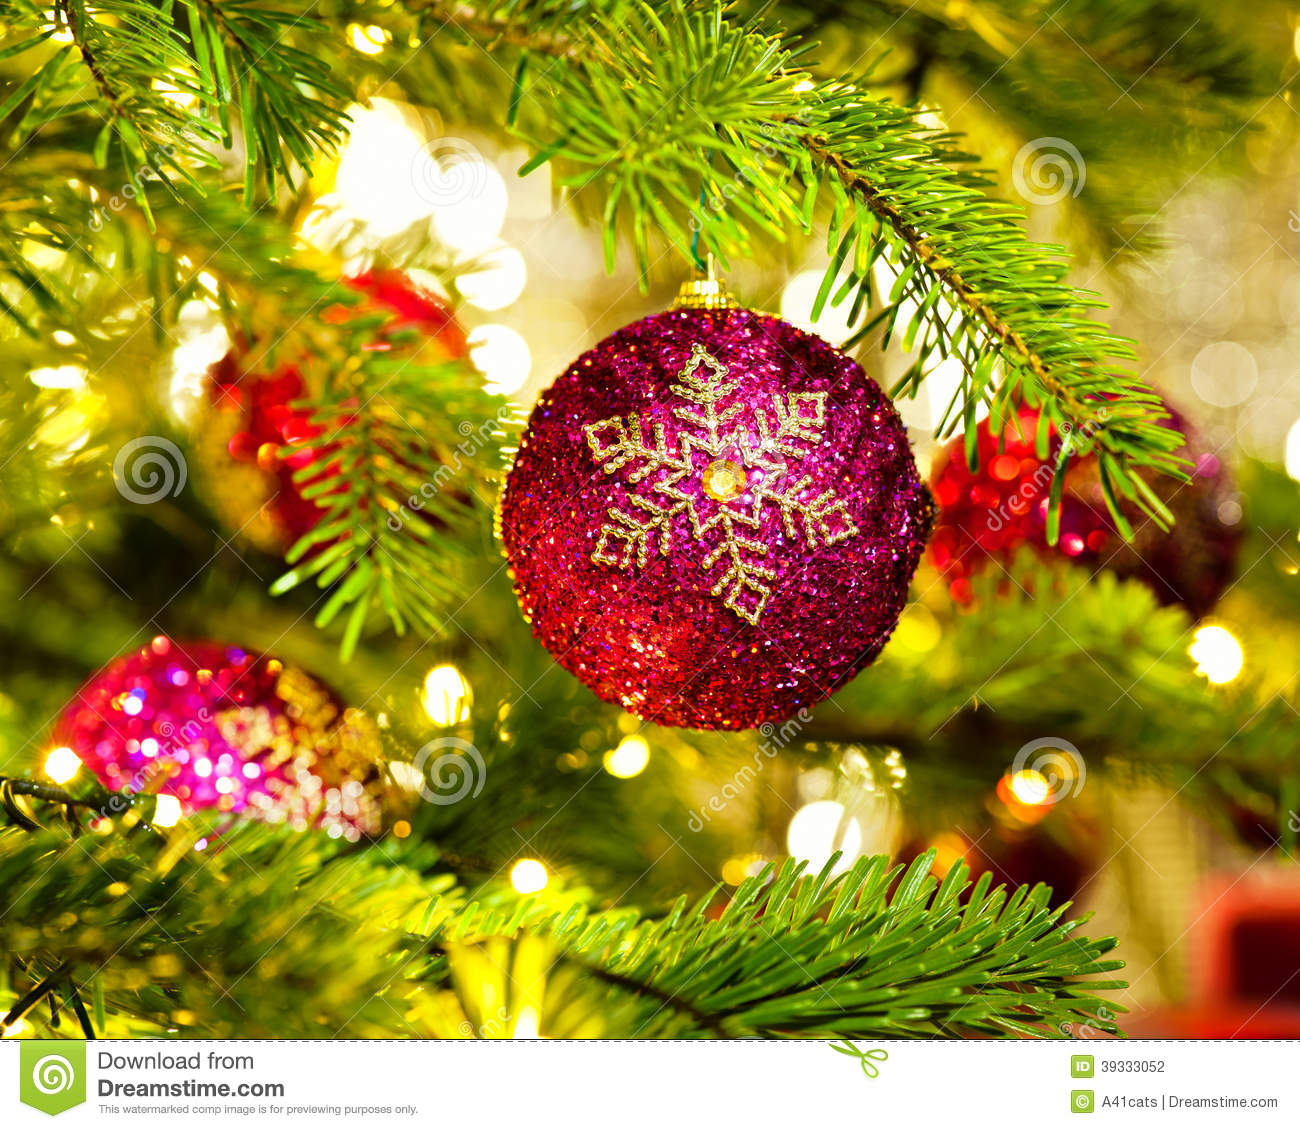 Arbre D'ornement Interieur Ornement Dans Un Arbre De Noël Photo Stock Image Du Ornements